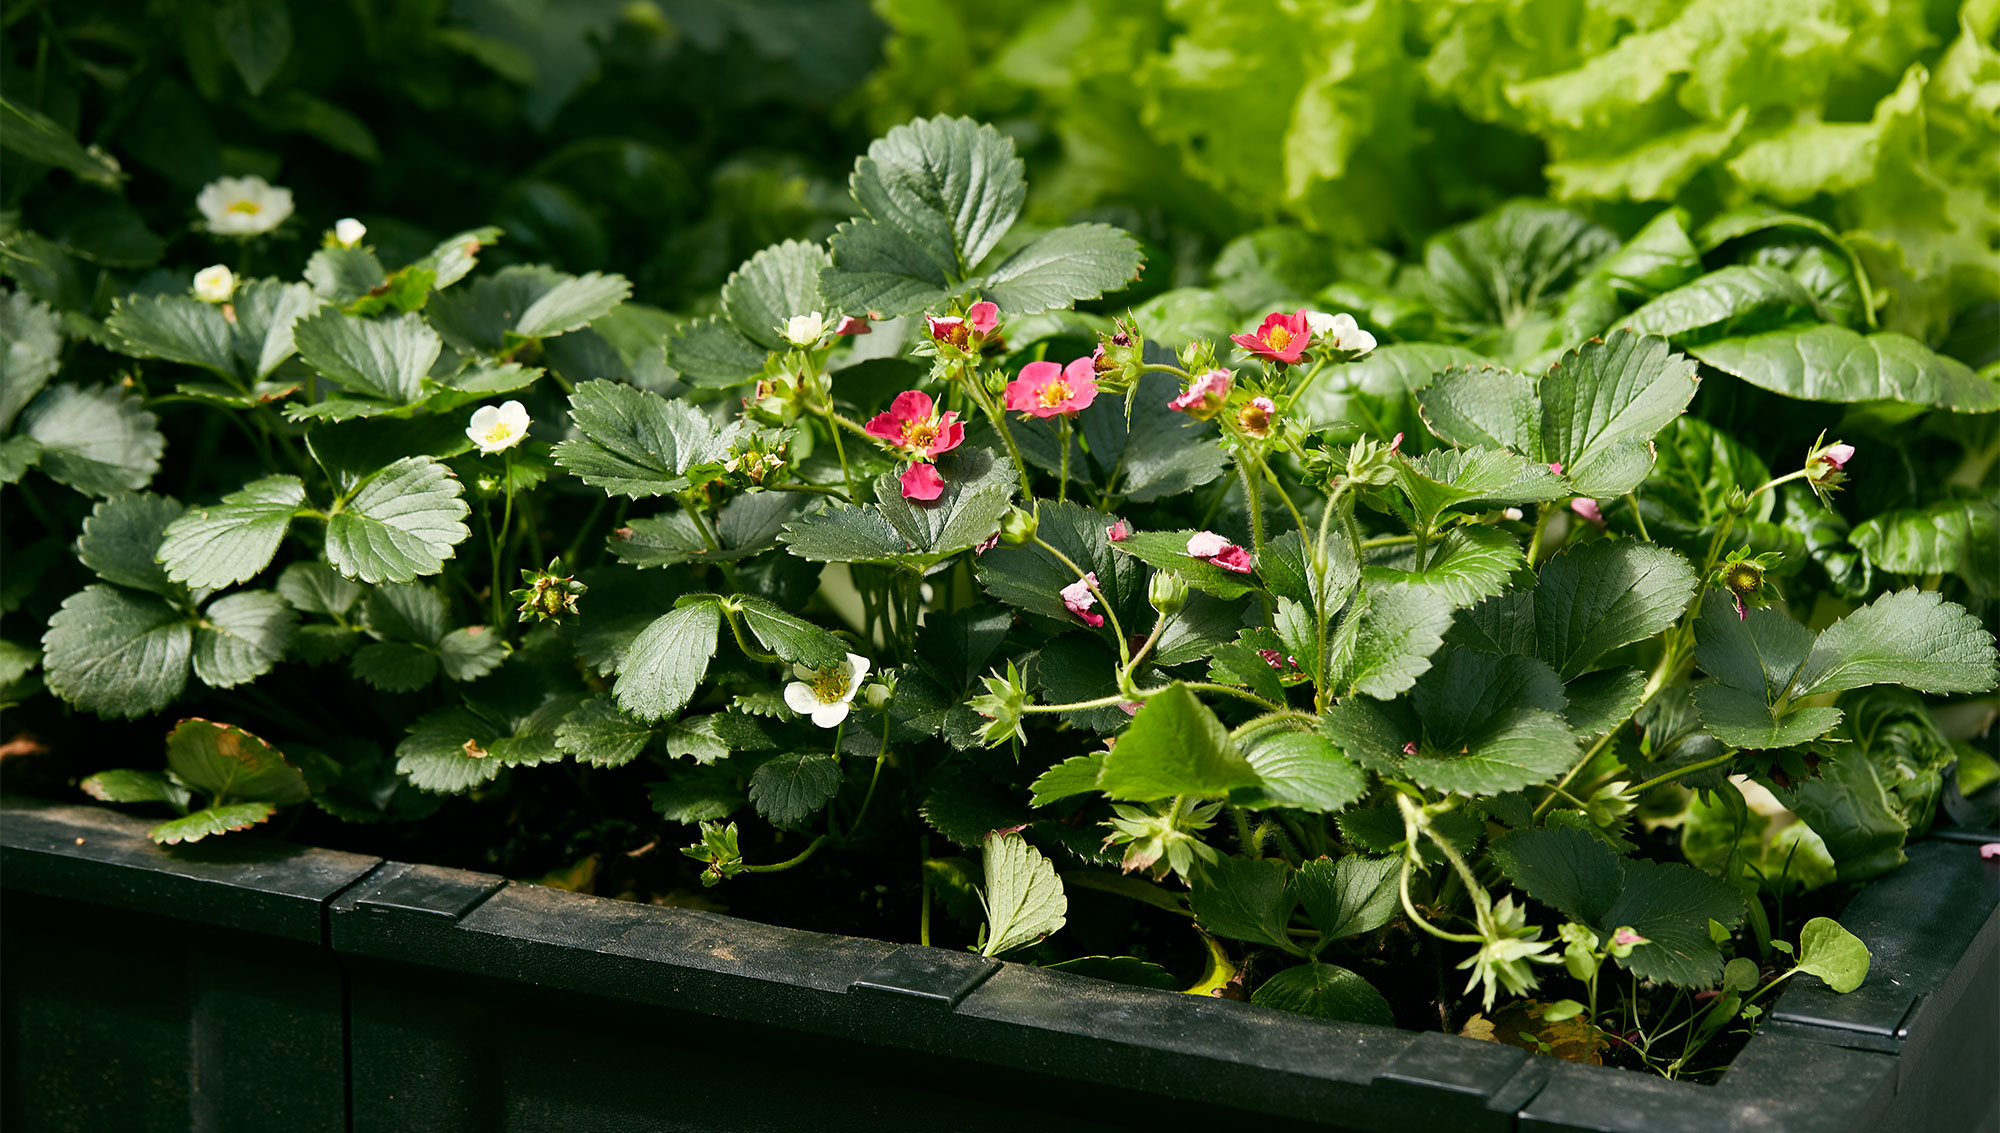 Strawberry plants growing in a raised-bed planter.